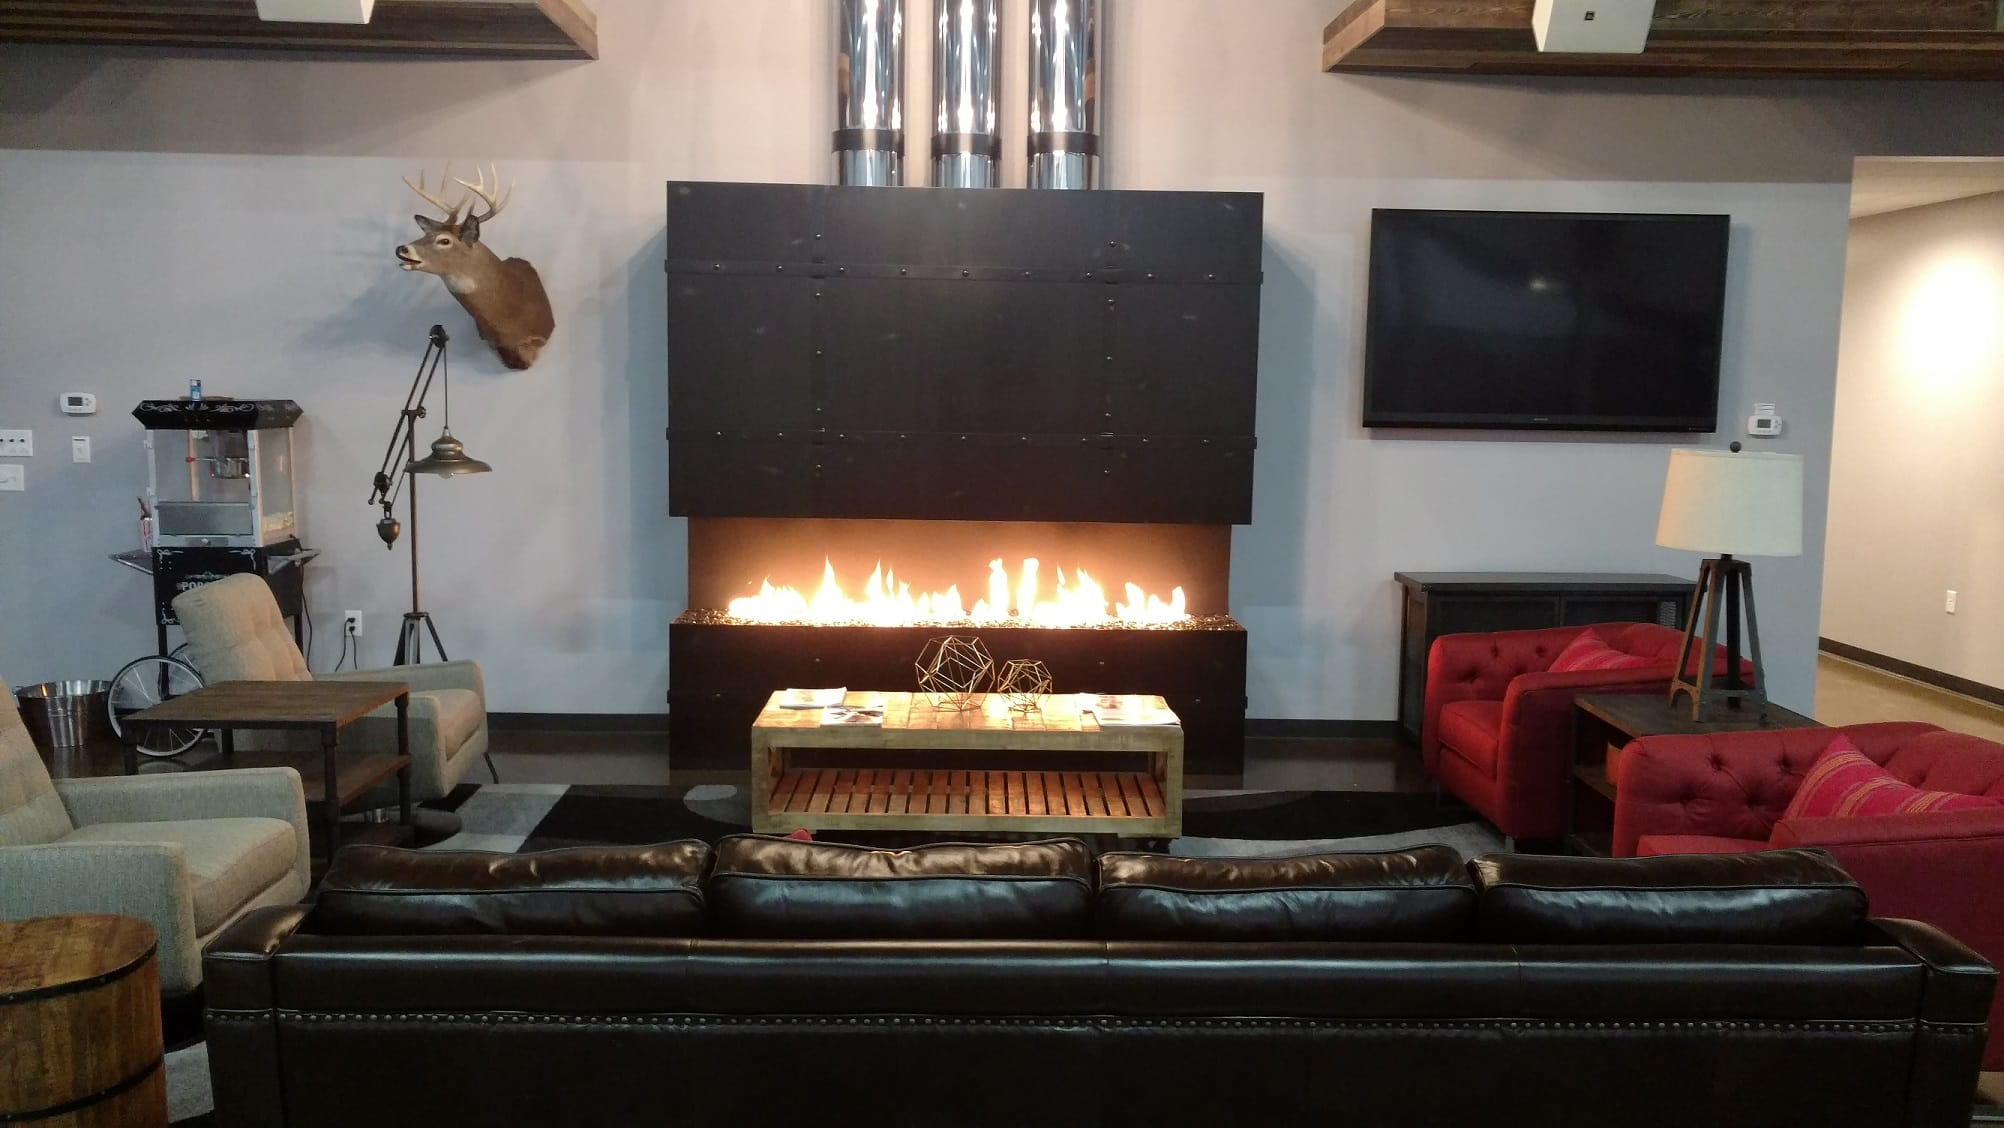 Indoor gas fireplaces designed to exceed your desires. Acucraft gas fireplaces have the tallest flames on the market and can be completely customized!